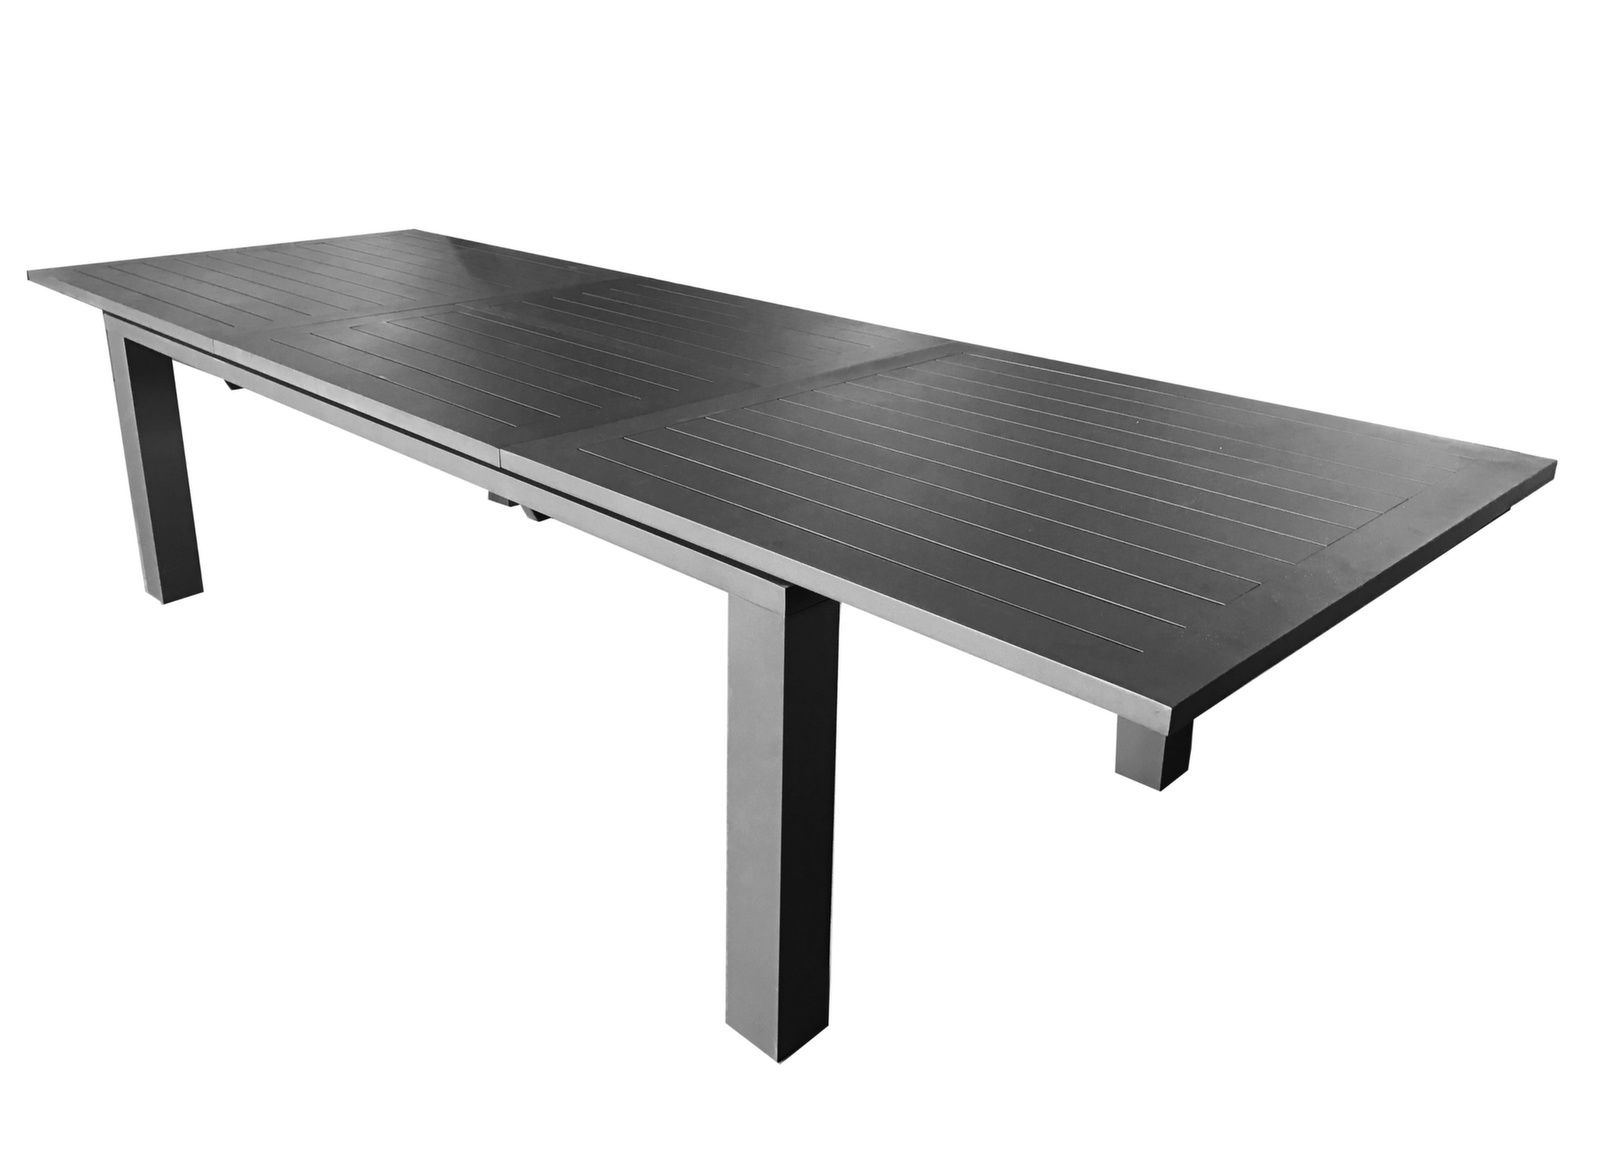 Table Elisa 220/320 Cm destiné Table De Jardin Extensible 320 Cm